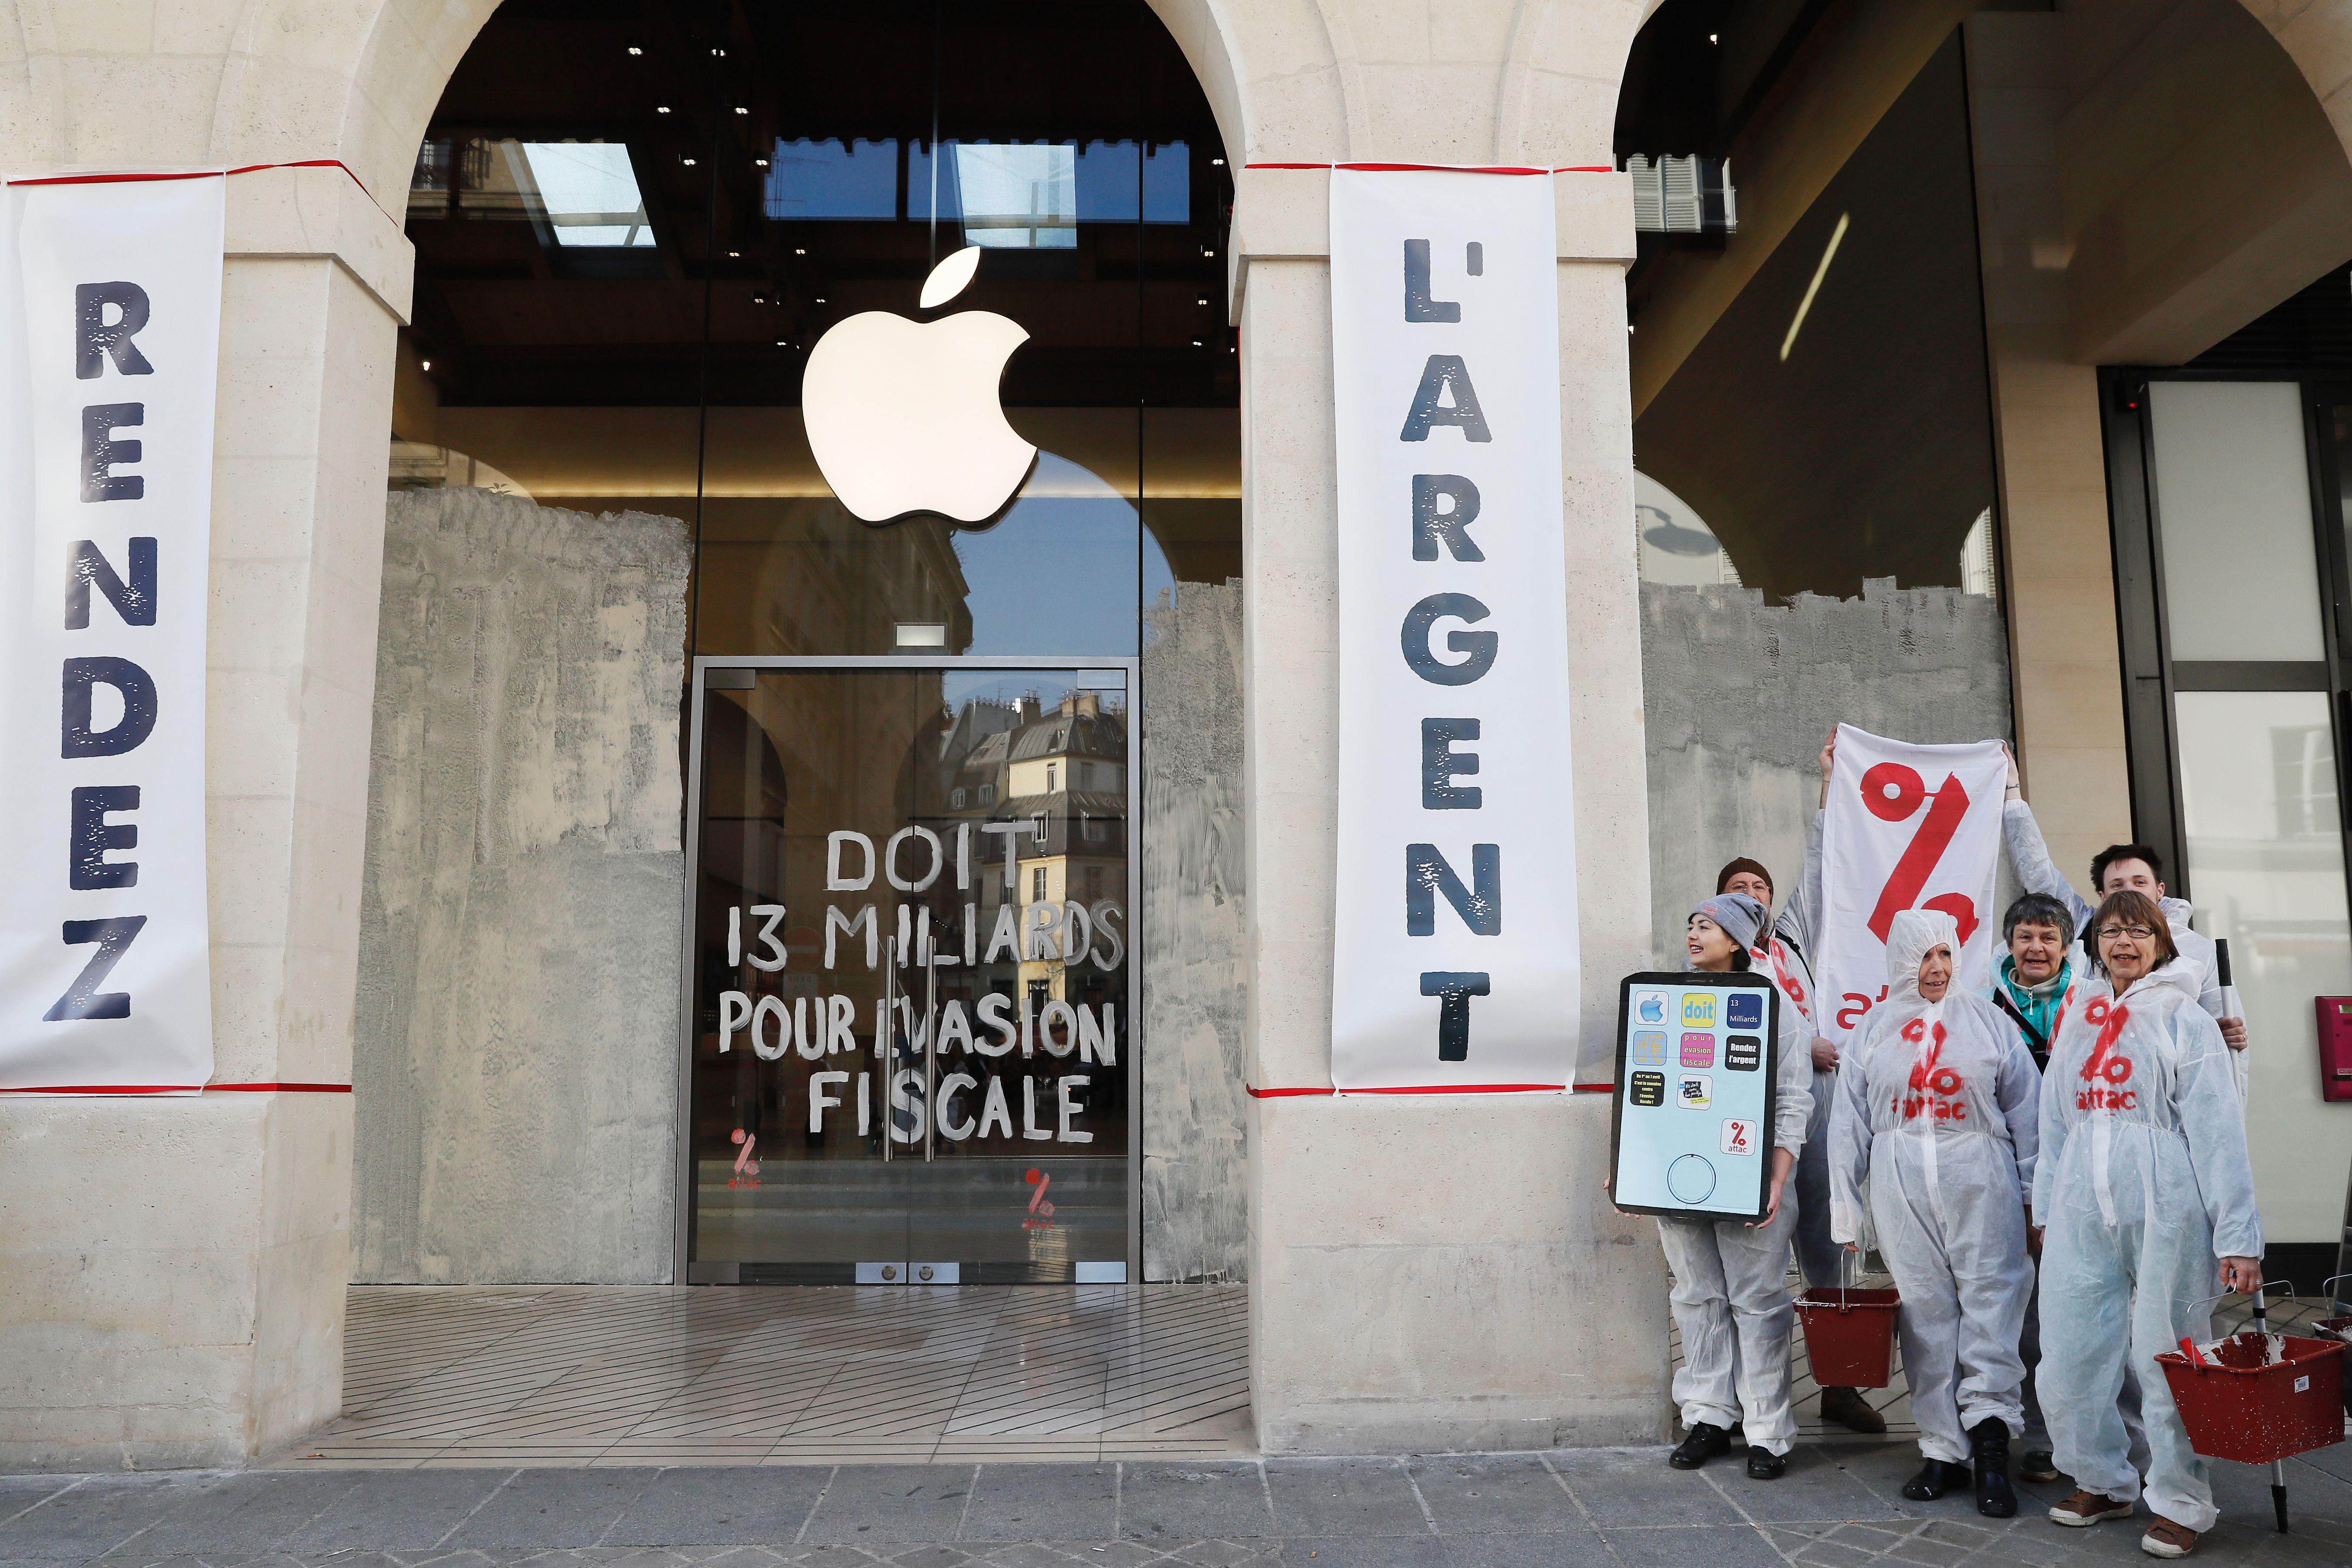 Activists from the Association for the Taxation of financial Transactions and Citizen's Action (ATTAC) pose with placards and an inscription which translate as 'Give the money back' and  '(Apple) owes 13 billion (euros) due to tax evasion' in front of an Apple store in Paris during a demonstration to denounce tax avoidance on March 13, 2017.